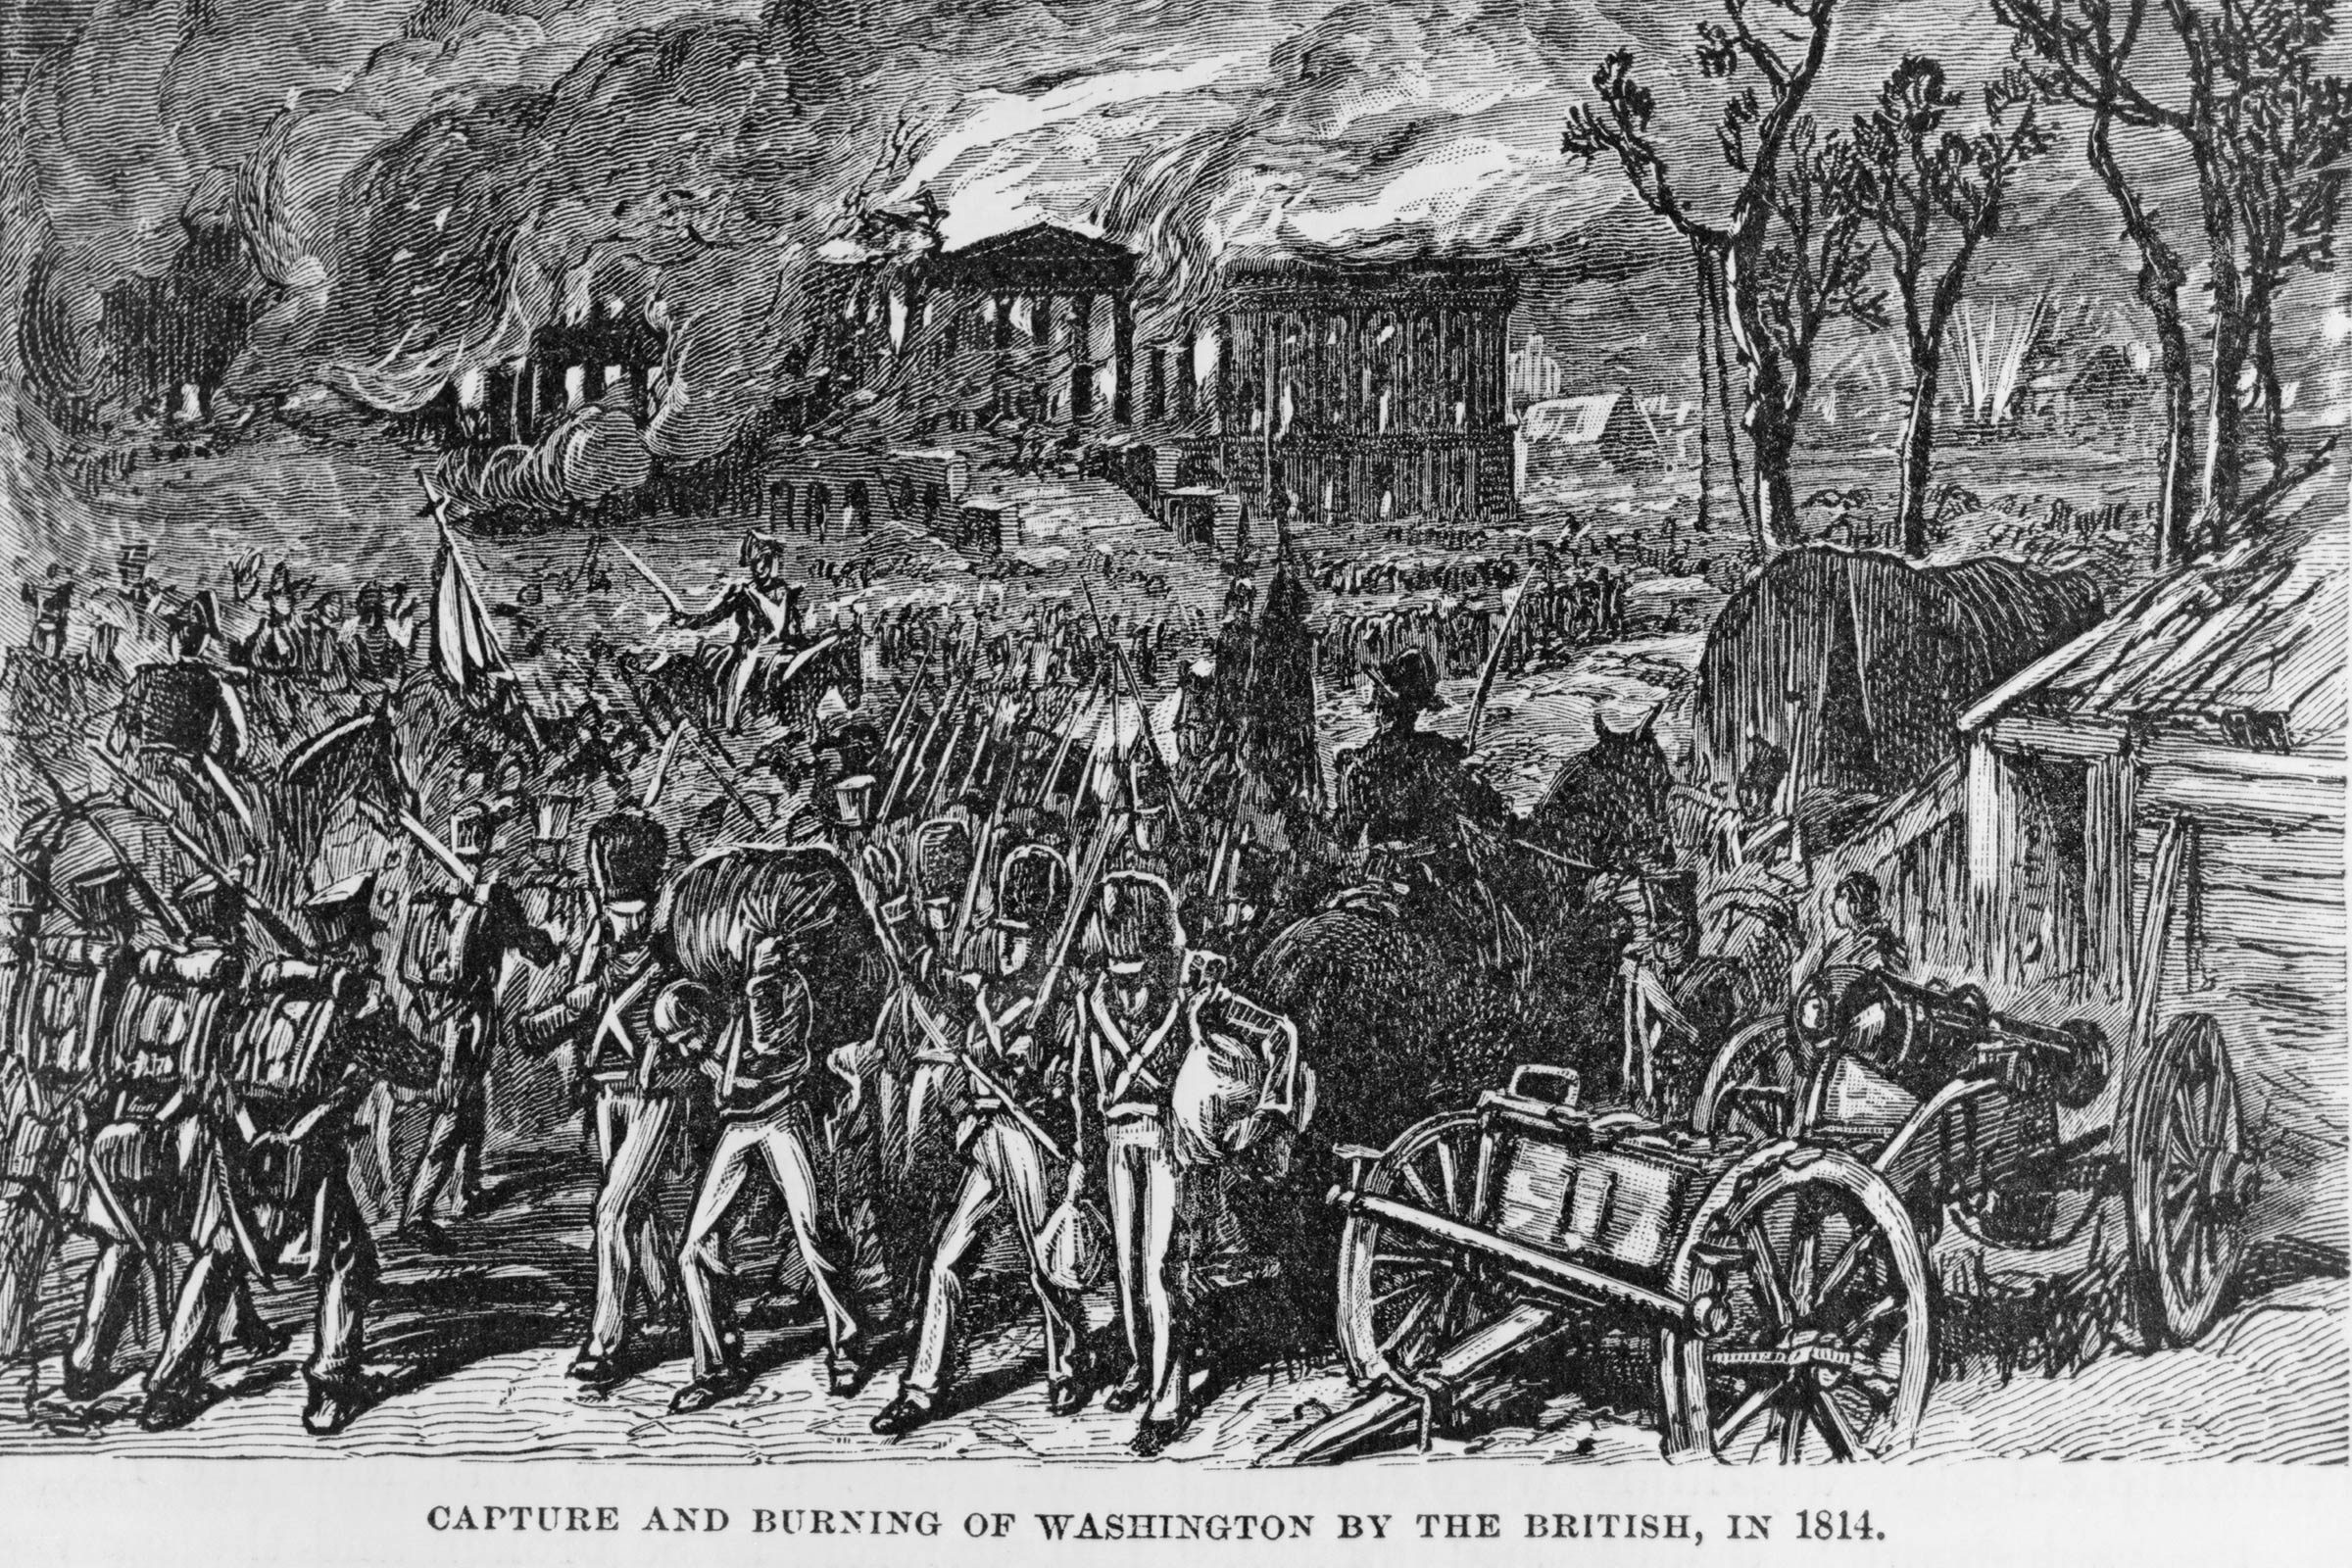 It was torched by British soldiers